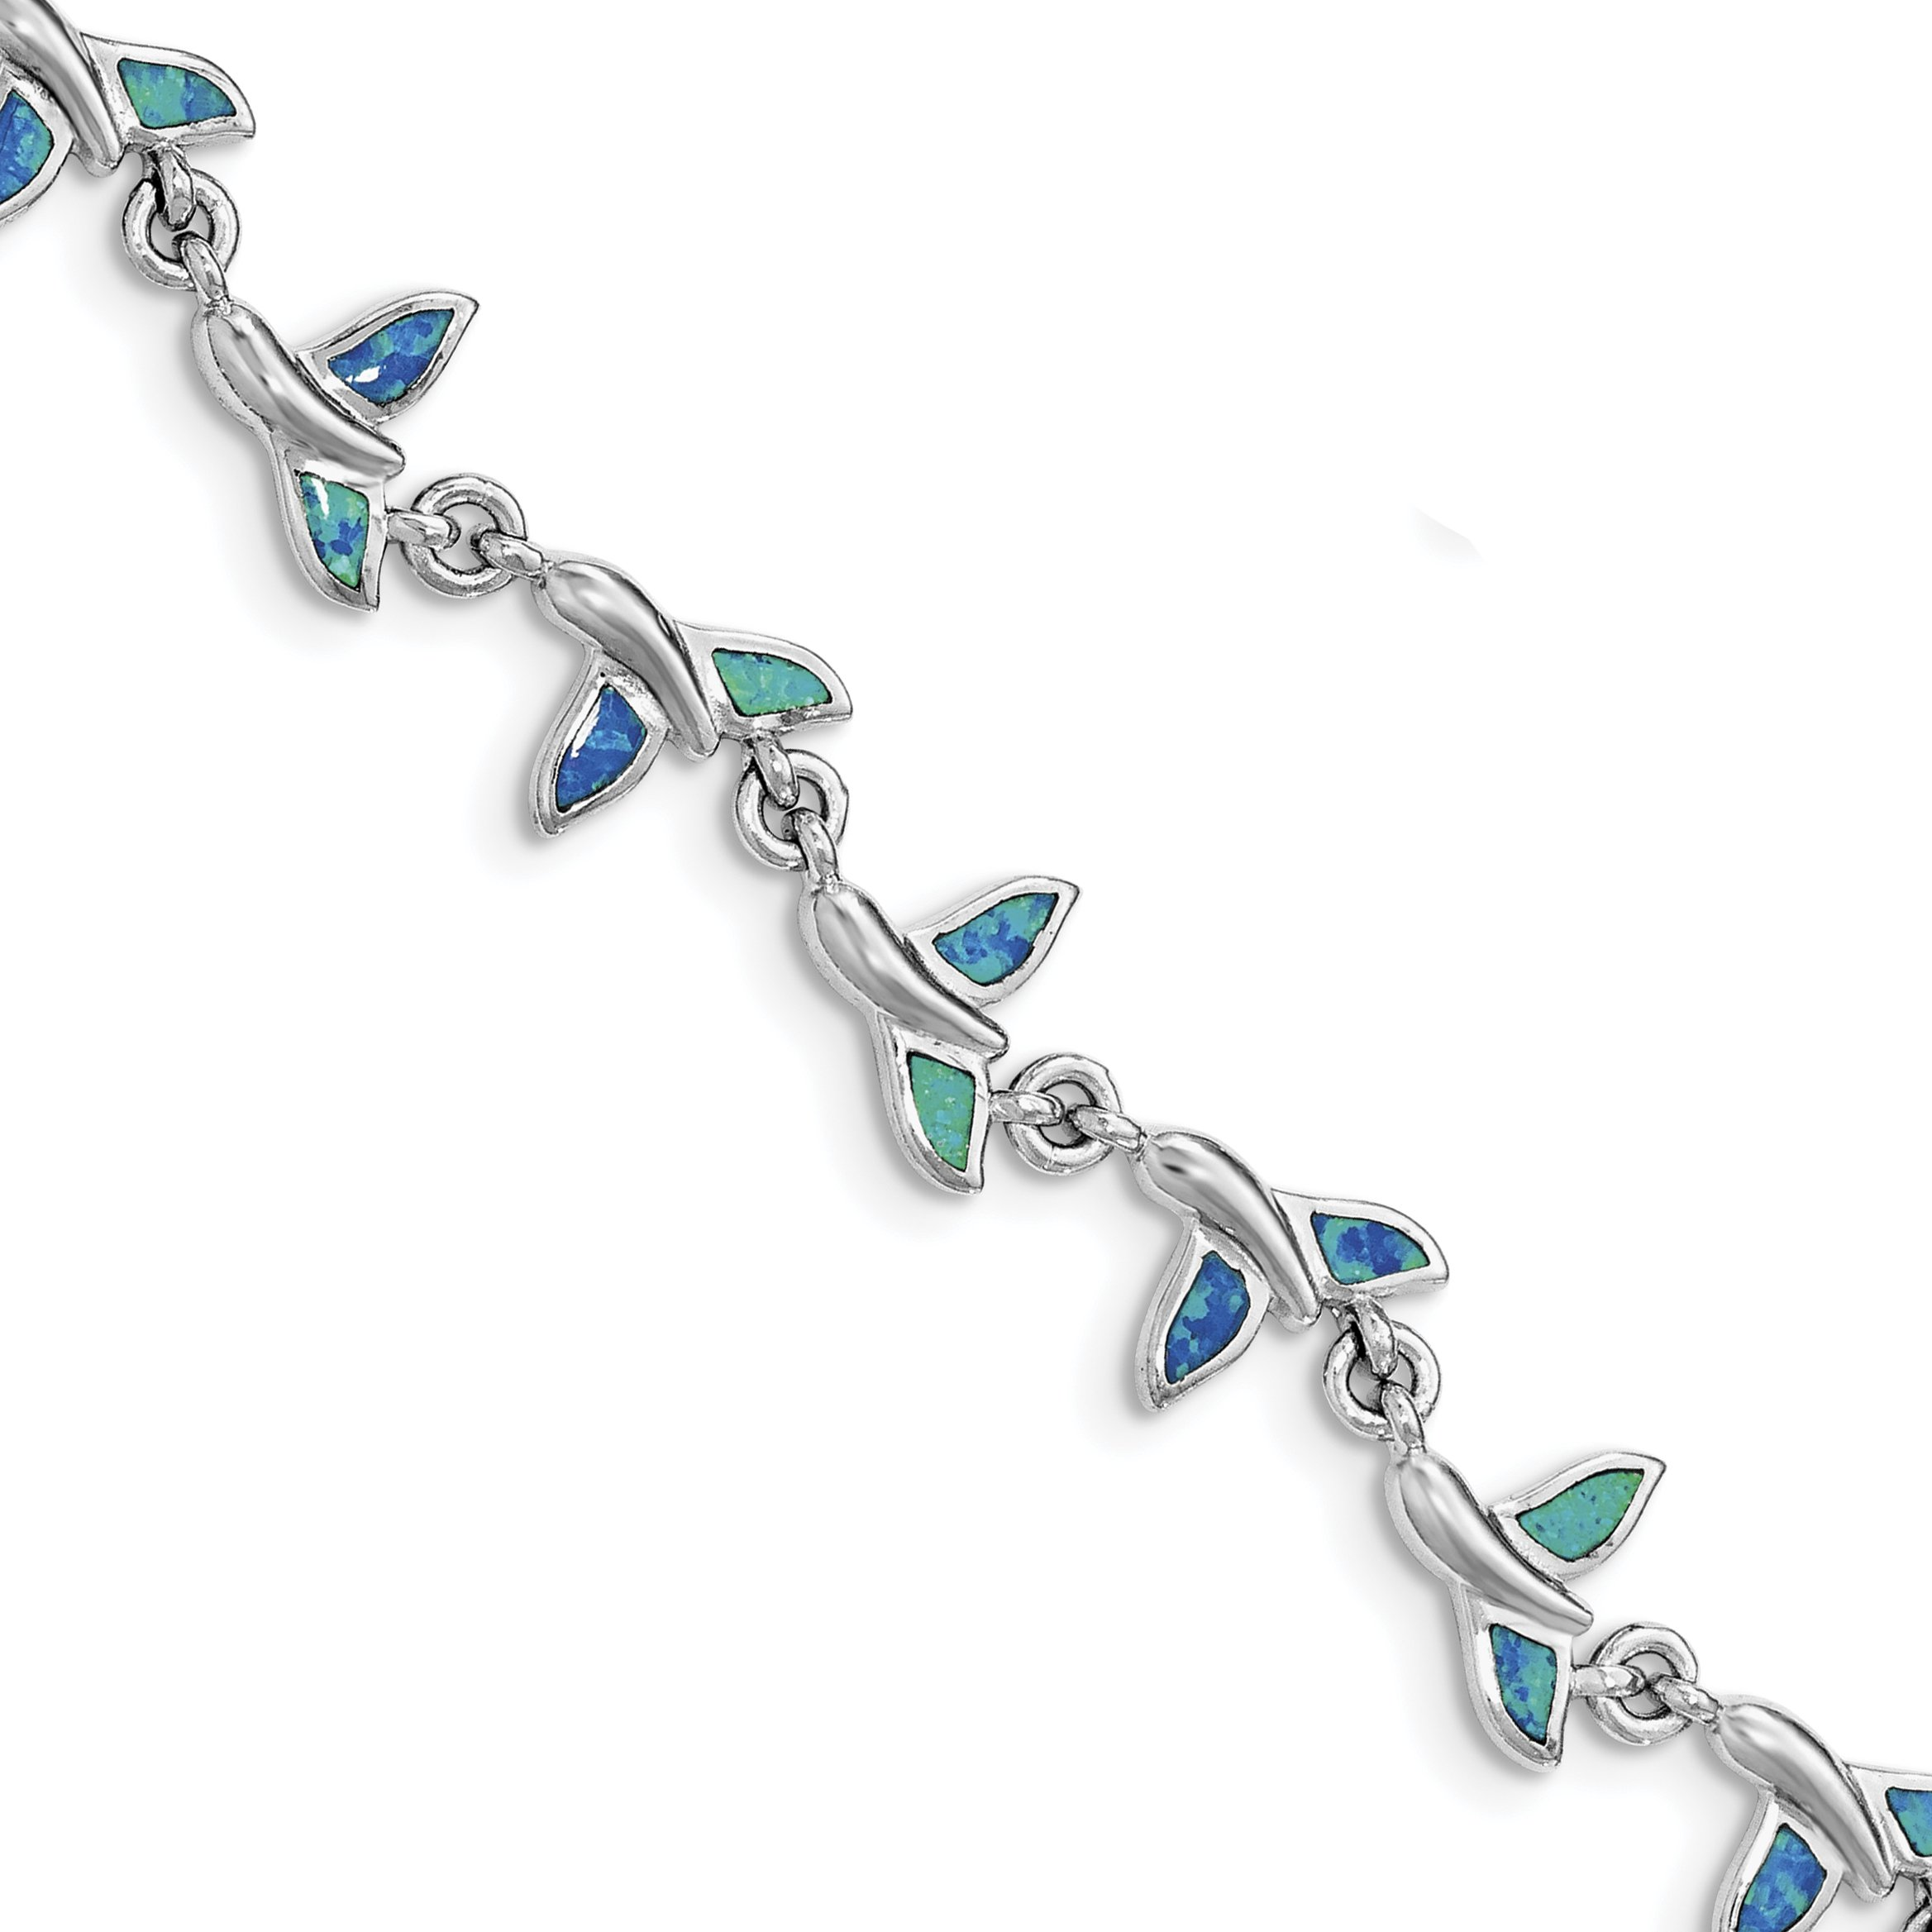 ICE CARATS 925 Sterling Silver Whale Tail 7.75in Bracelet 7.75 Inch Animal Fine Jewelry Gift For Women Heart by ICE CARATS (Image #2)